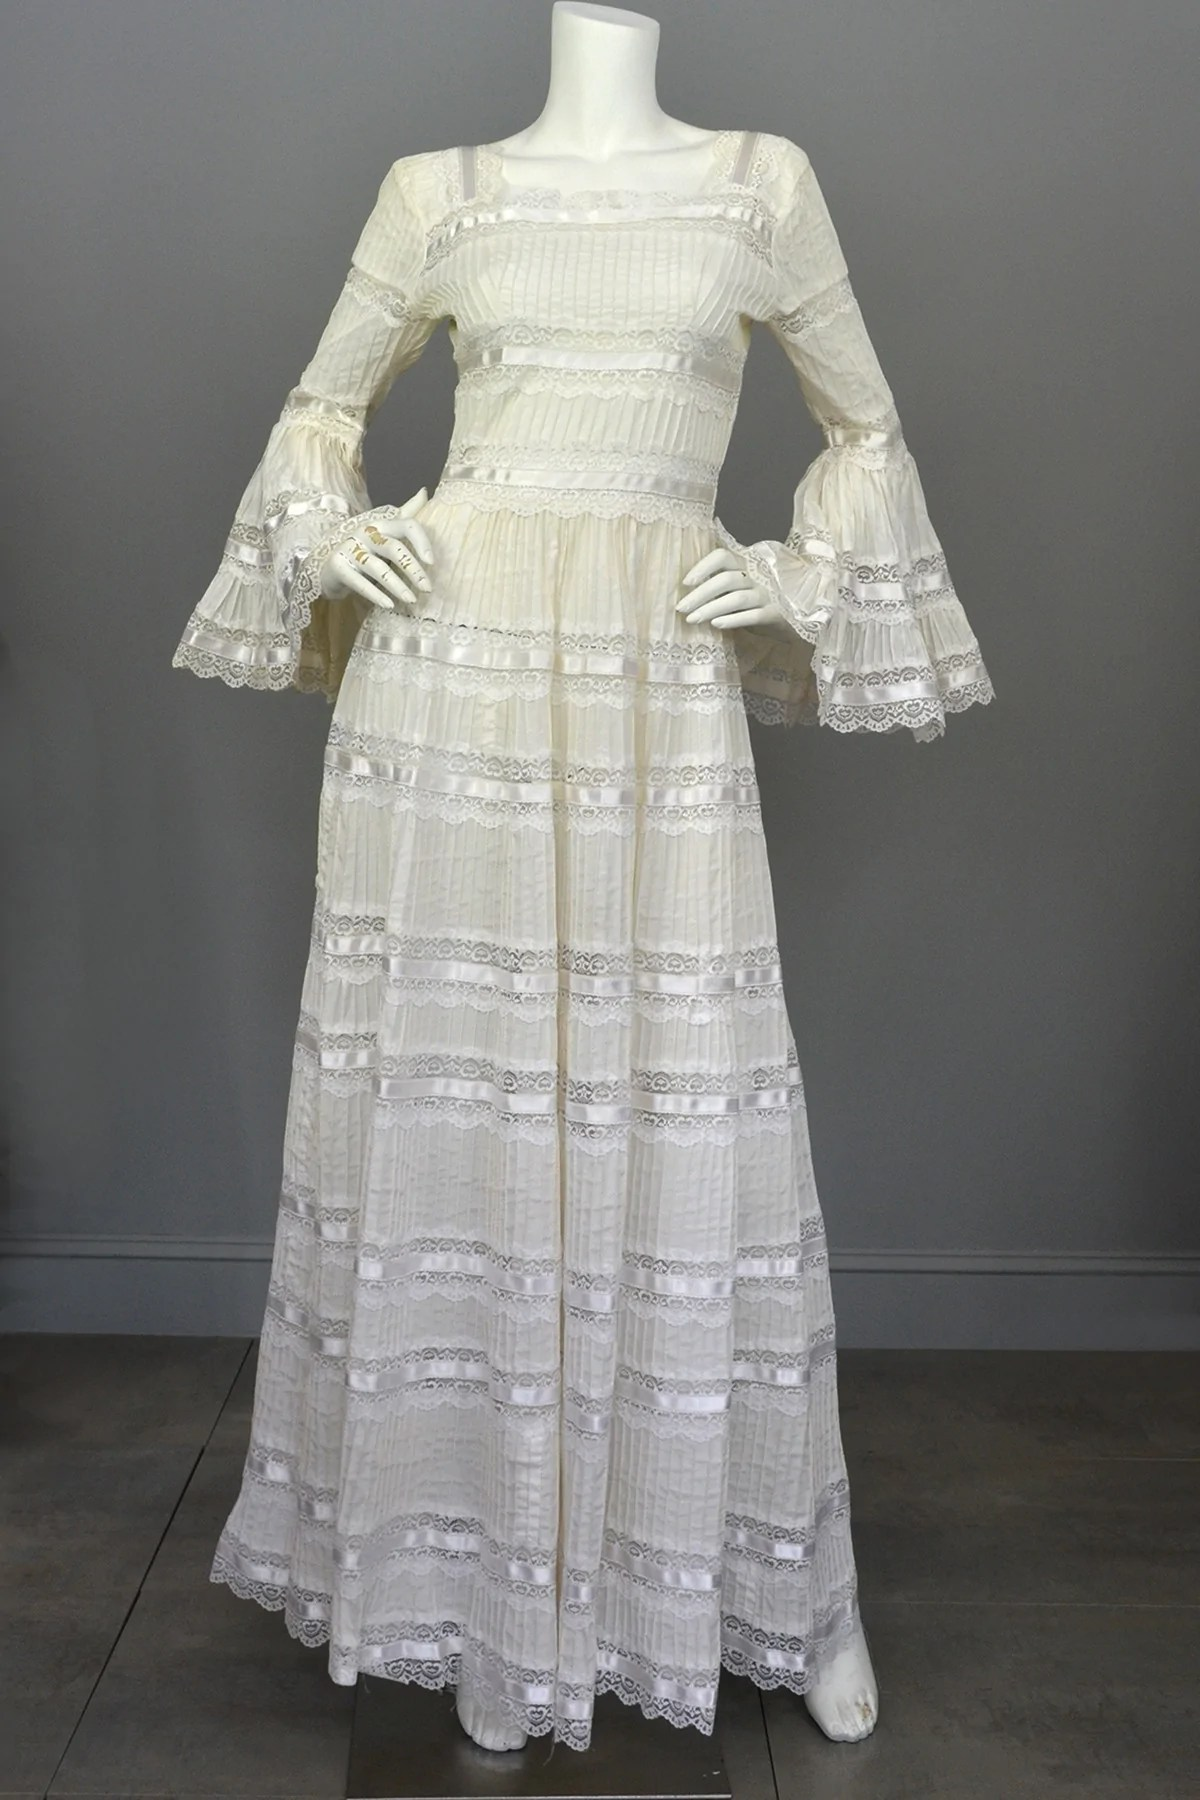 s vintage mexican wedding dress with bell sleeves and lace mexican wedding dress s Vintage Mexican Wedding Dress with Bell Sleeves and Lace